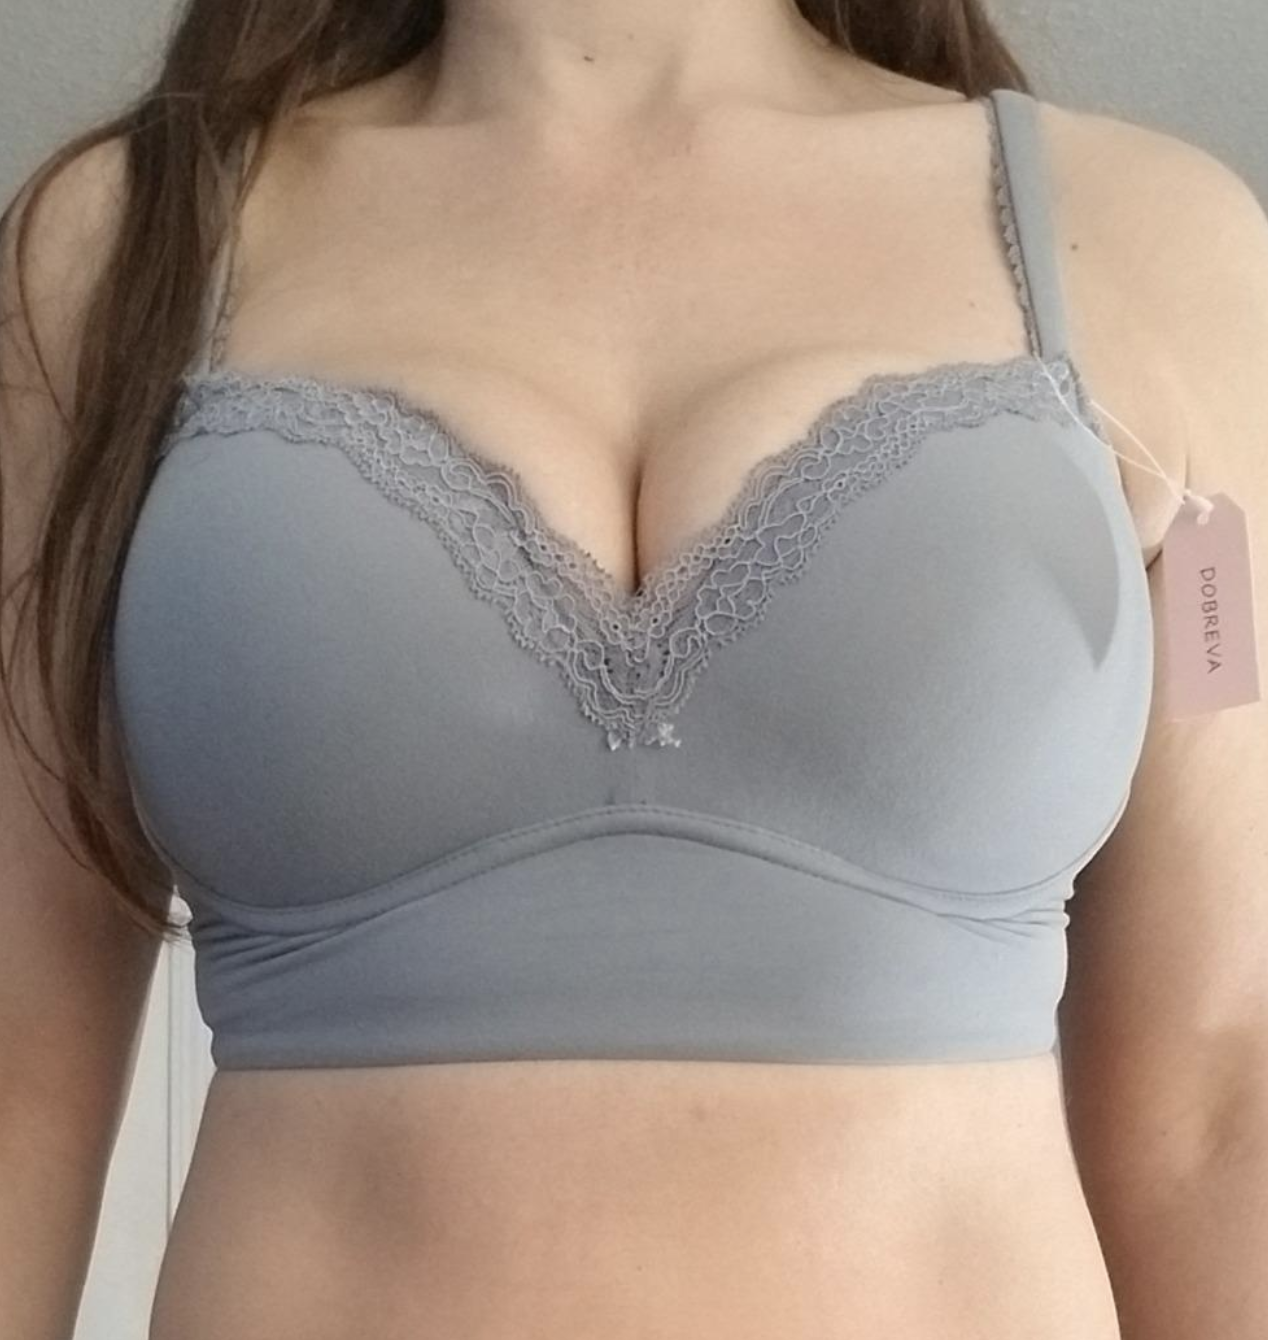 reviewer wearing the bra in gray with a sweetheart top shape, lace along the top of the bra, and a thick supportive band underneath the cups